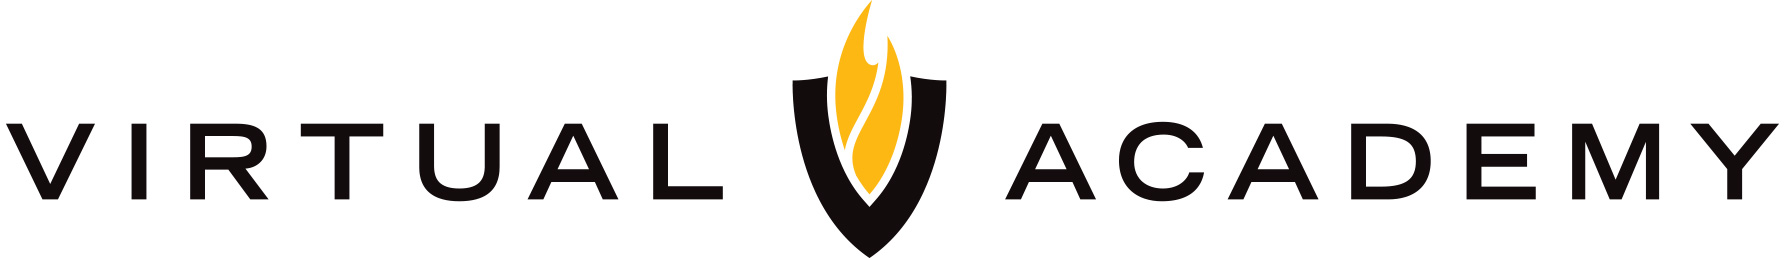 Virtual-Academy-logo_horz_BLK-GOLD-on-white